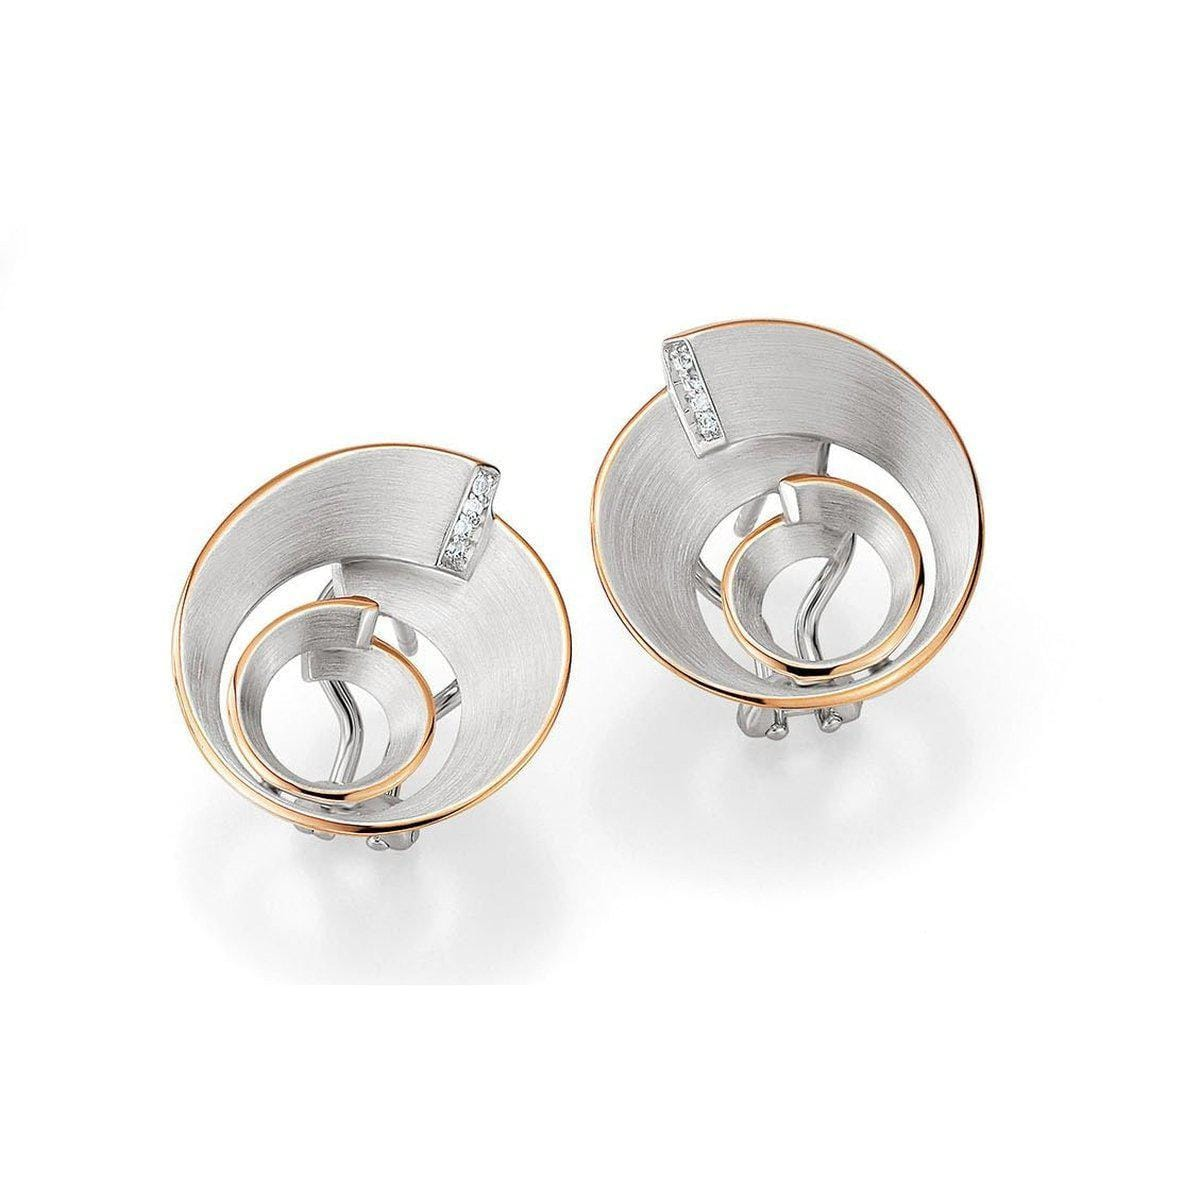 Rose Gold Plated Sterling Silver White Sapphire Earrings - 02/03667